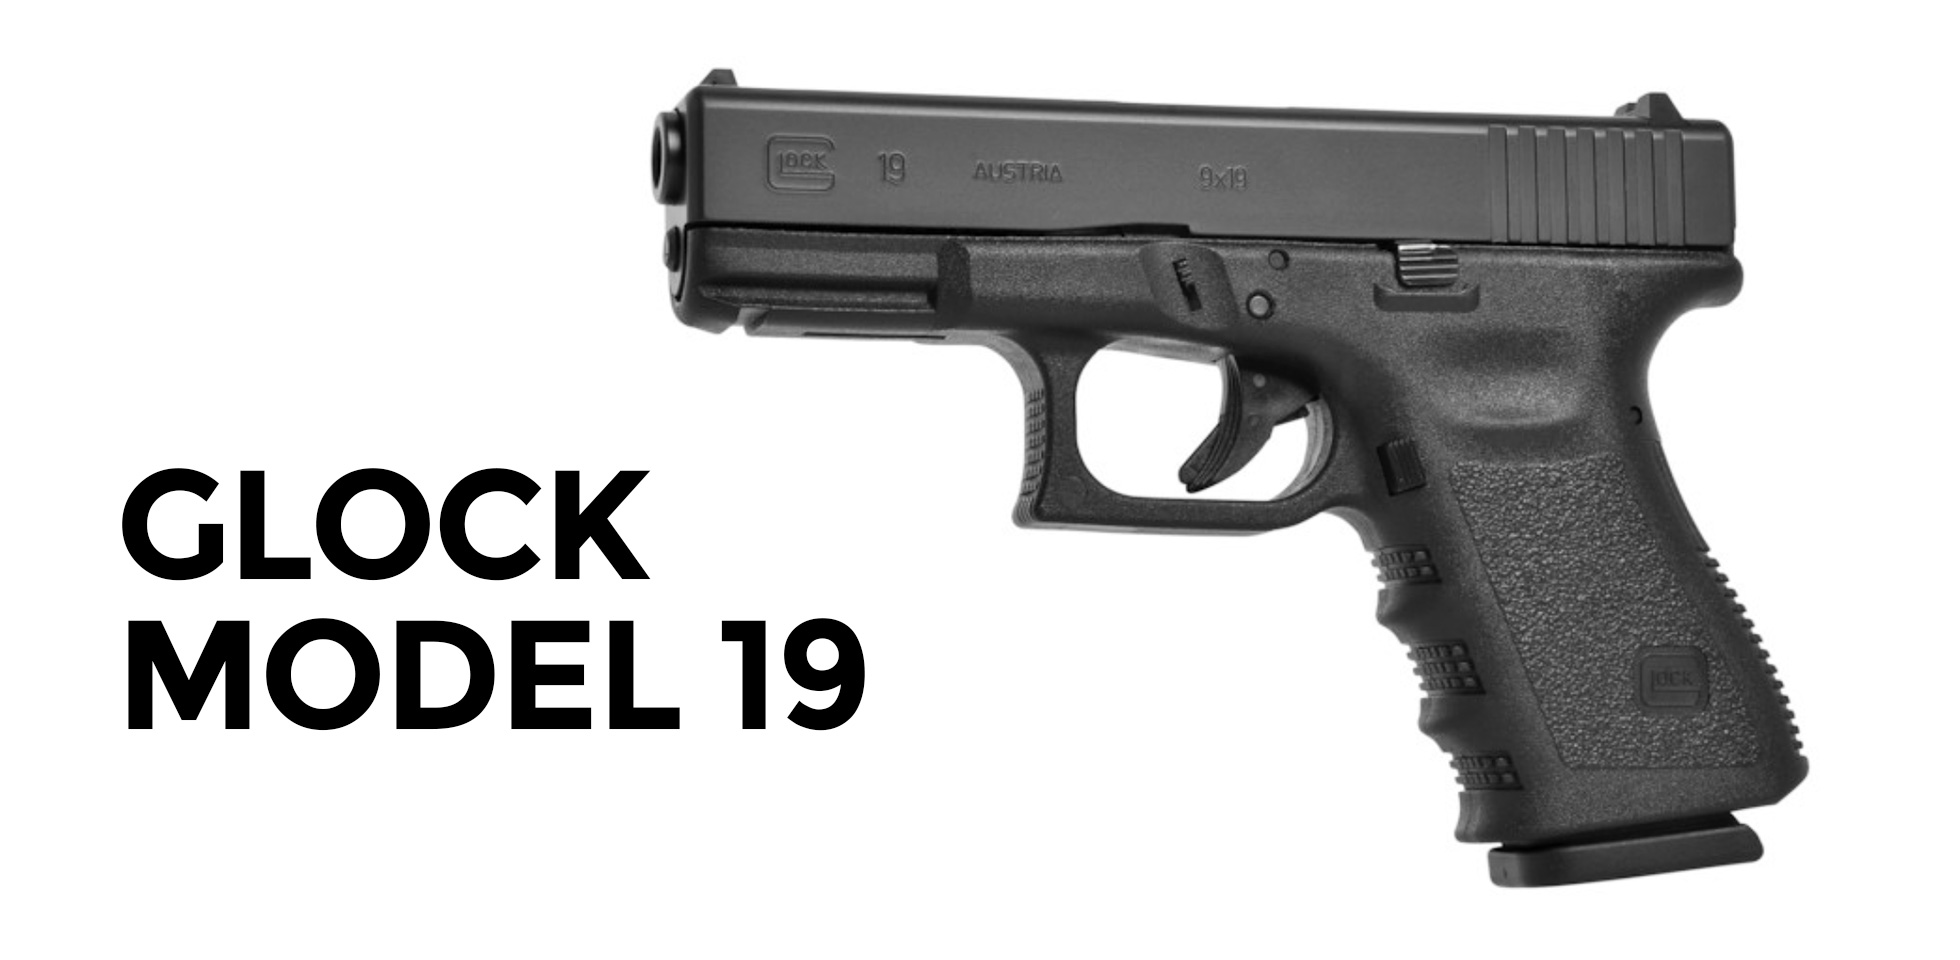 A Glock 19 is one of the best values in guns